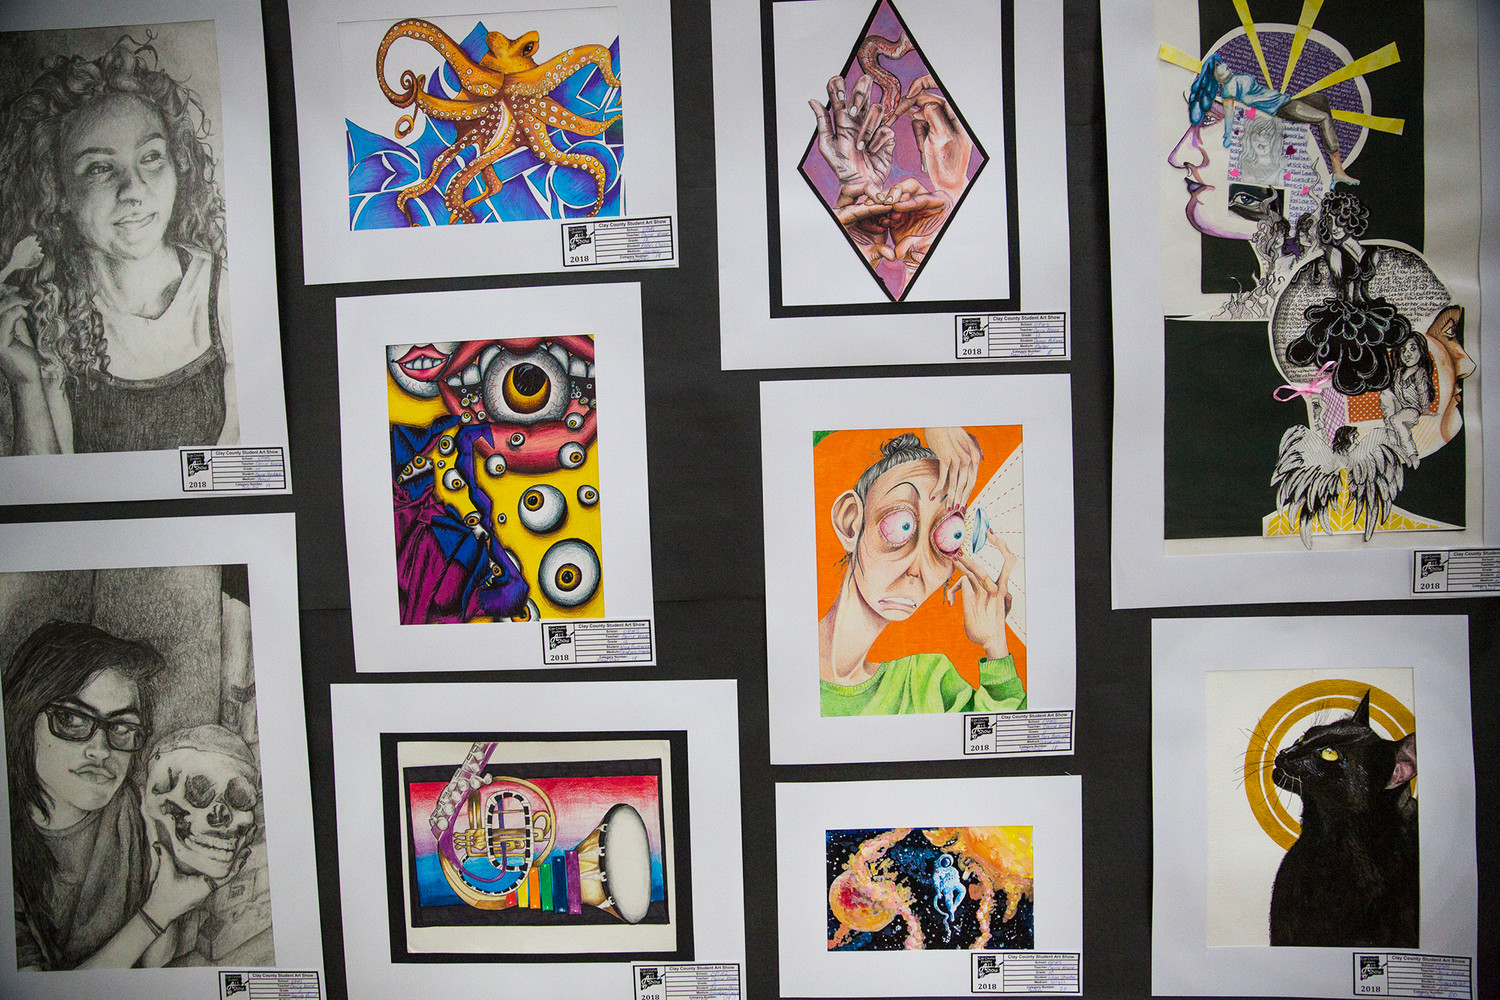 Art ranging from paintings and drawings to more involved sculpture and mixed media pieces hung during the annual student art show at the mall featuring work from schools throughout Clay County from high school all the way down to Kindergarteners' work.